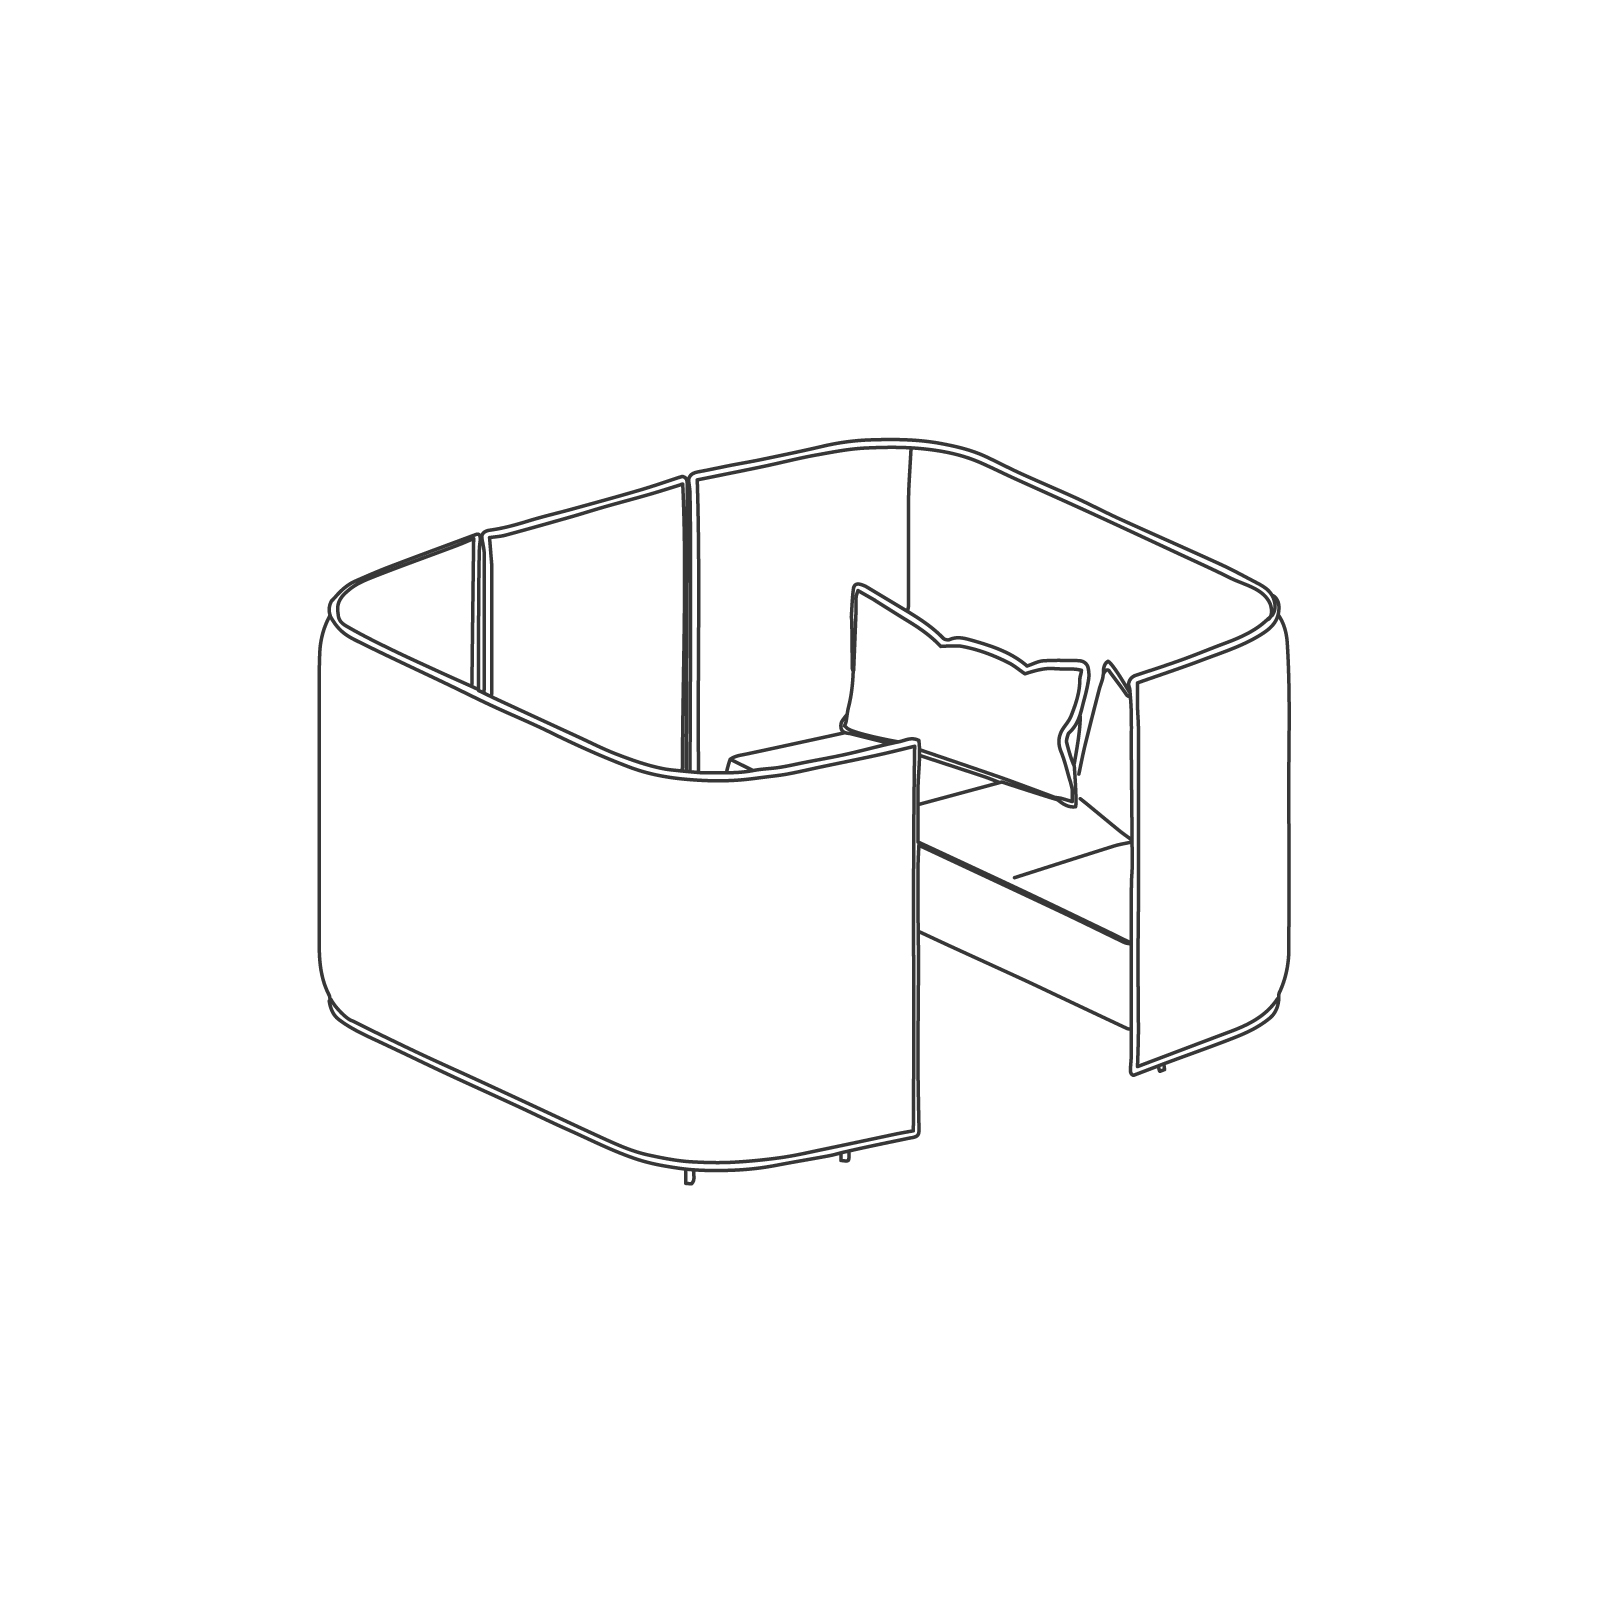 A line drawing of Cloud Plain Booth–3 Seat.